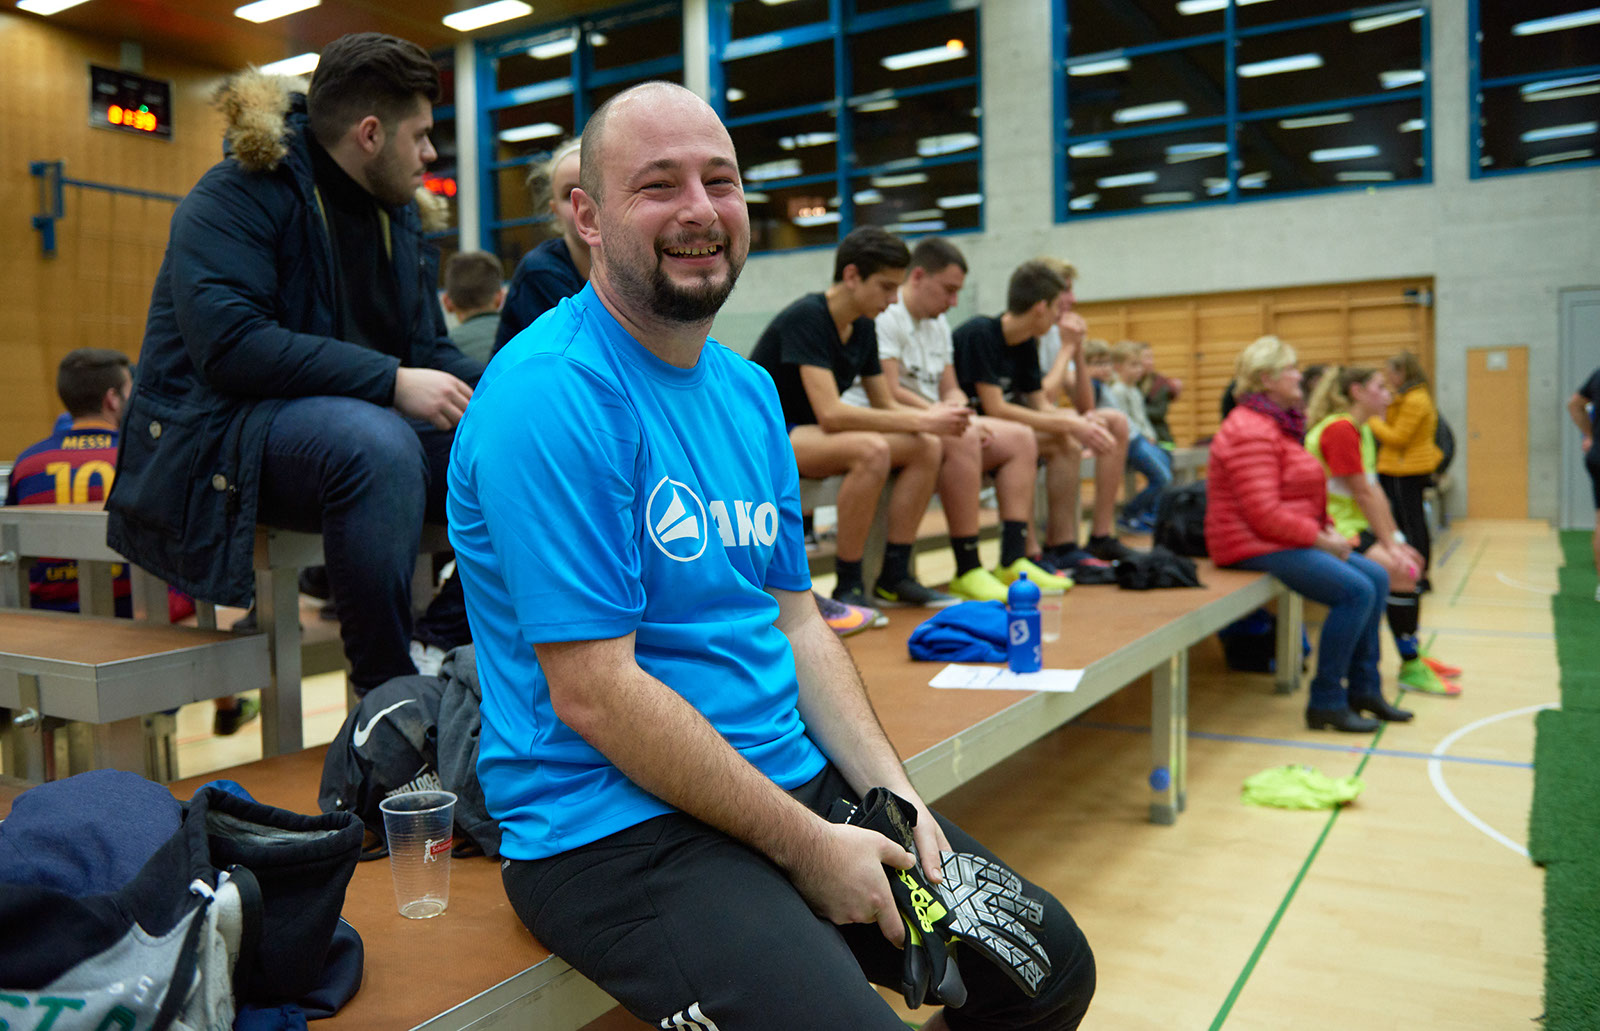 Bodensee-Cup_20171110_215714 (1).jpg